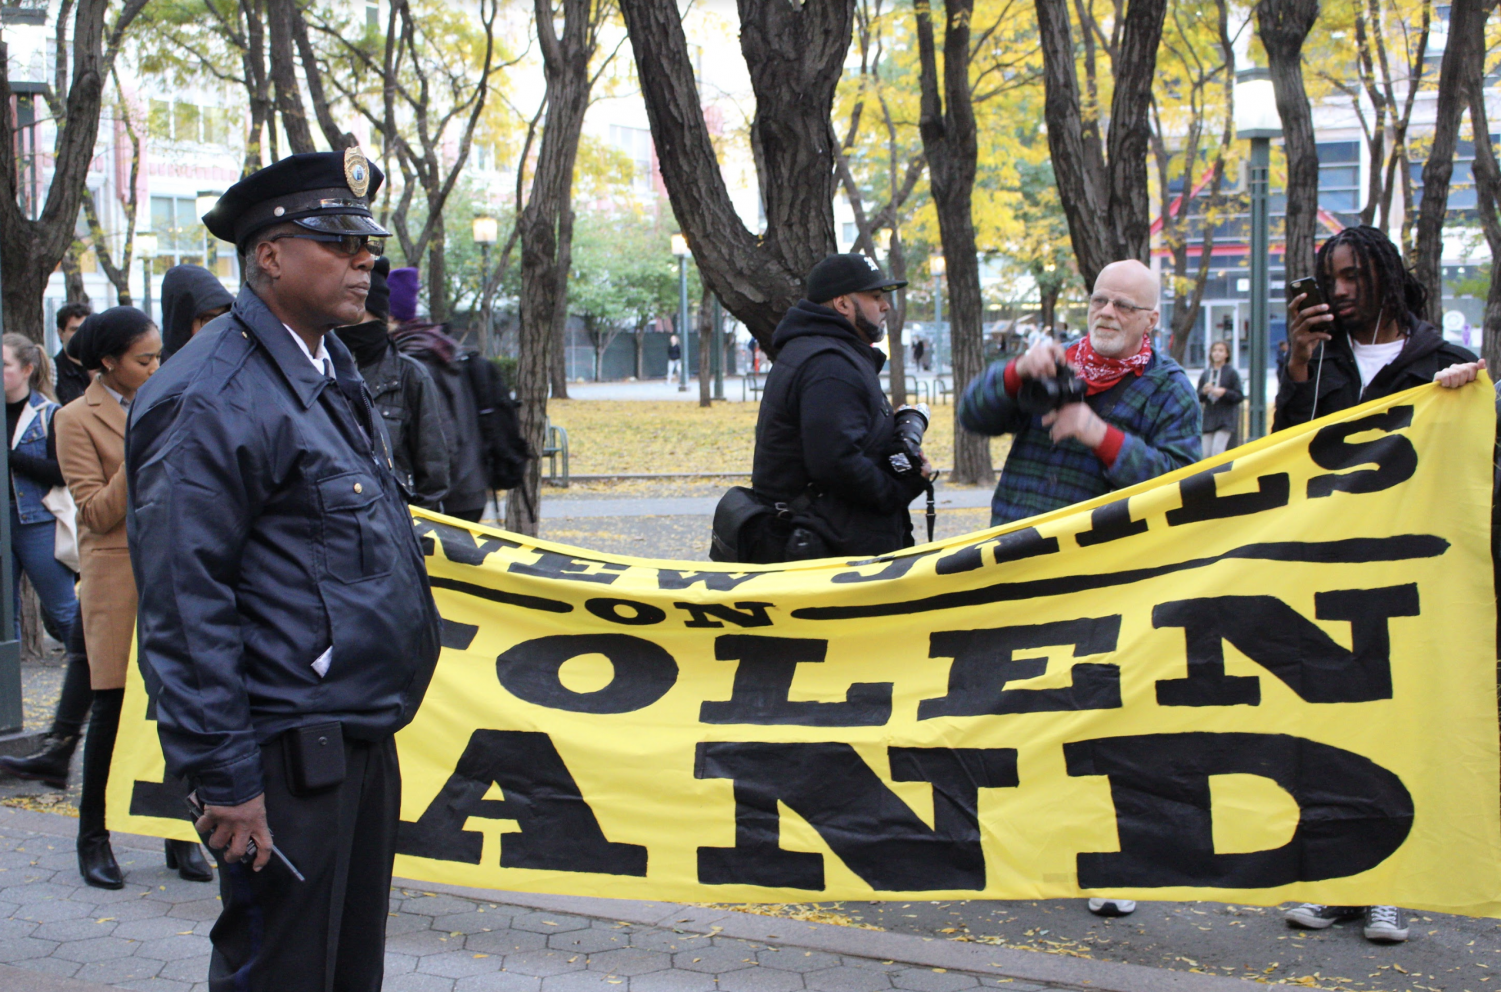 NYPD officer at emergency action protest on Nov. 1.